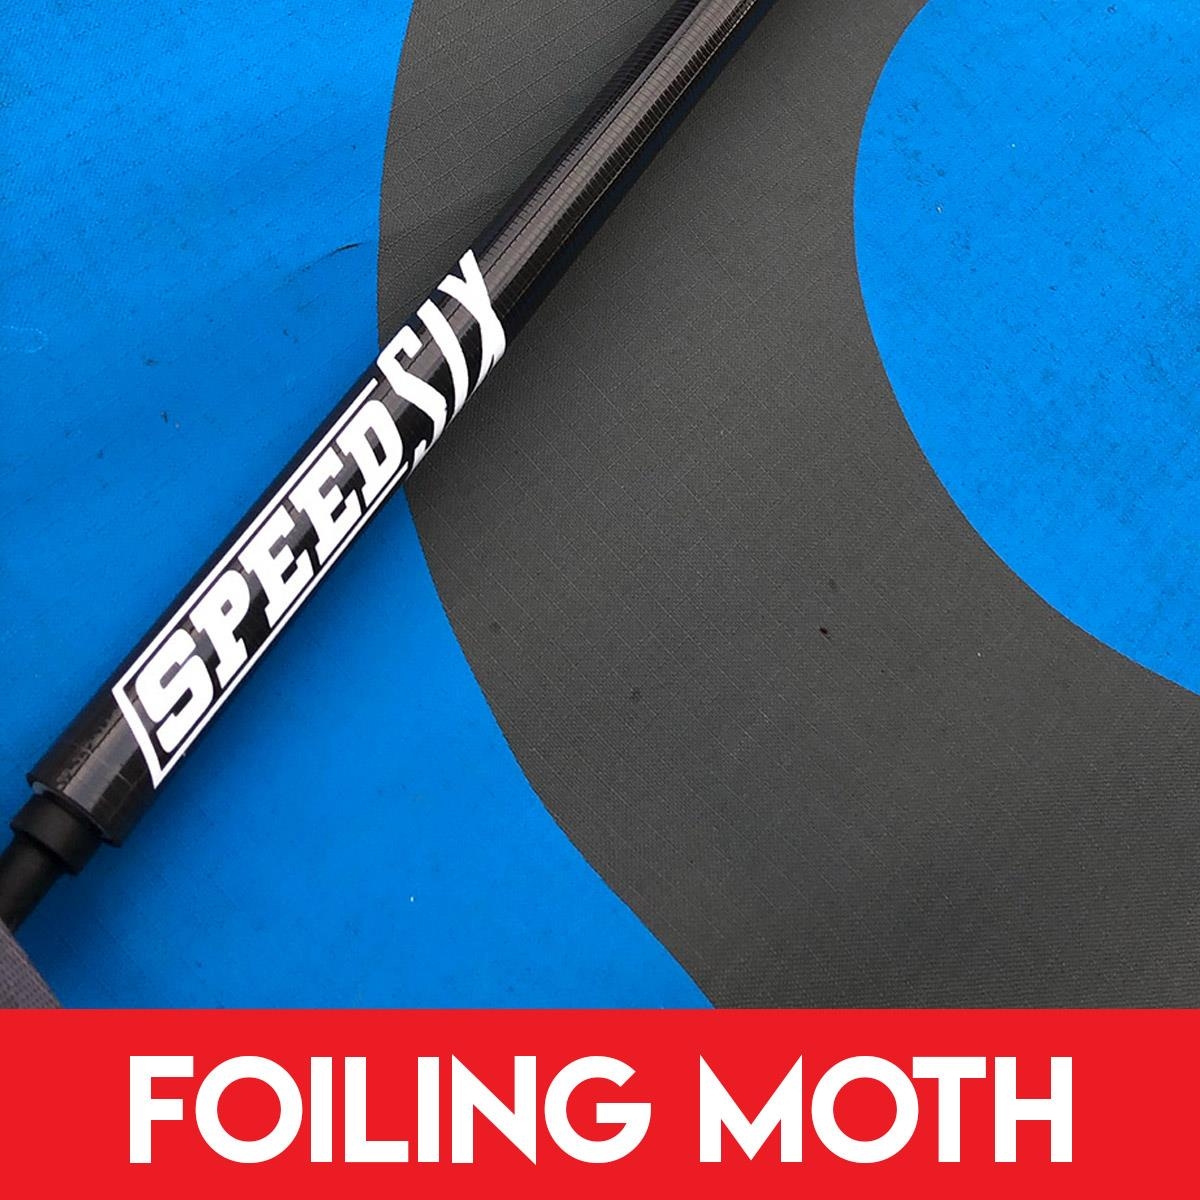 SpeedStix Foiling Moth Carbon Tiller Extension